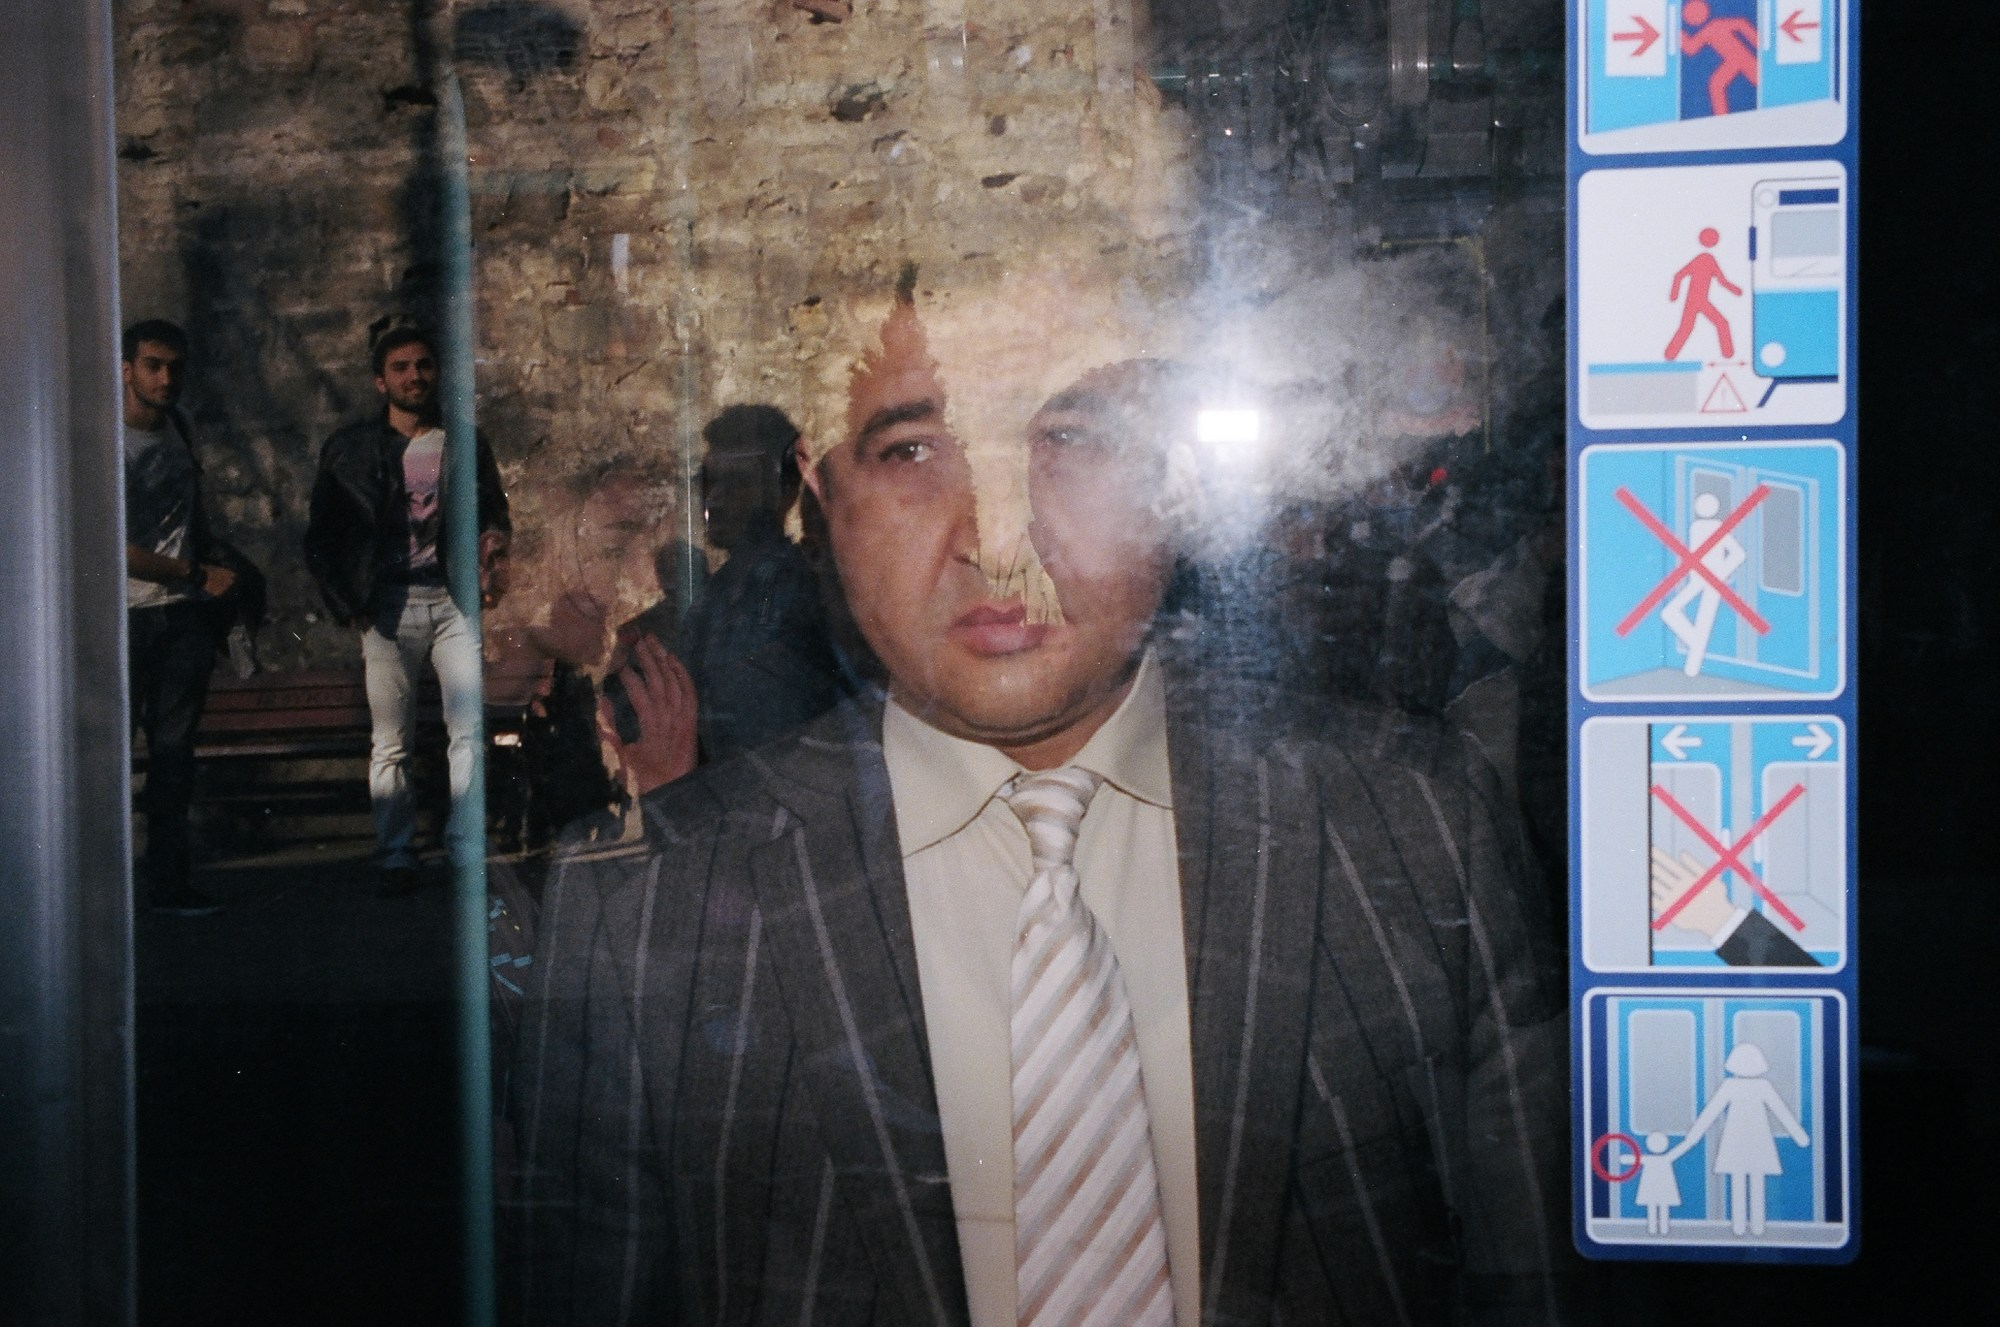 Istanbul man in suit, with flash through glass. 35mm, Leica MP, Kodak Portra 400.